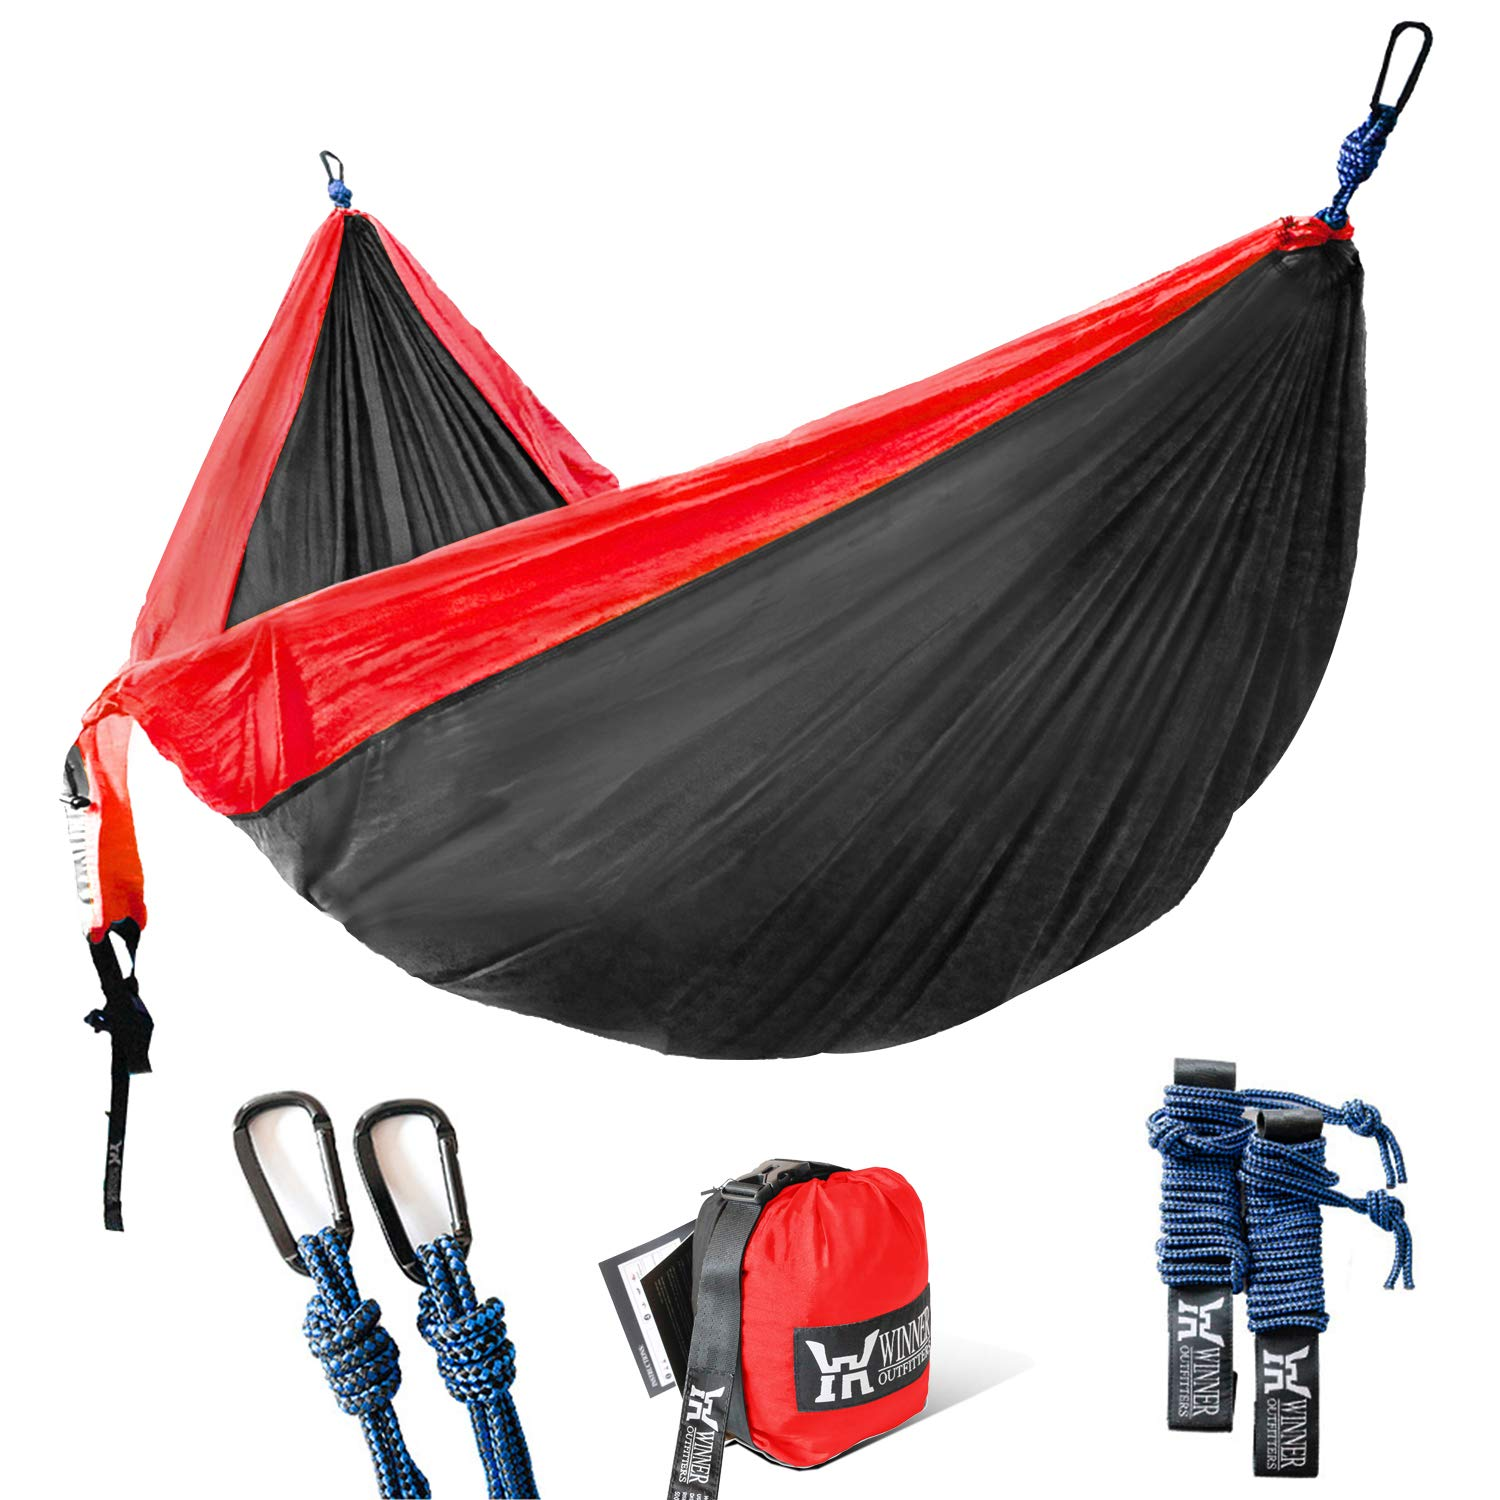 Winner Outfitters Double Camping Hammock - Lightweight Nylon Portable Hammock, Best Parachute Double Hammock For Backpacking, Camping, Travel, Beach, Yard. 118''(L) x 78''(W) Red/Charcoal